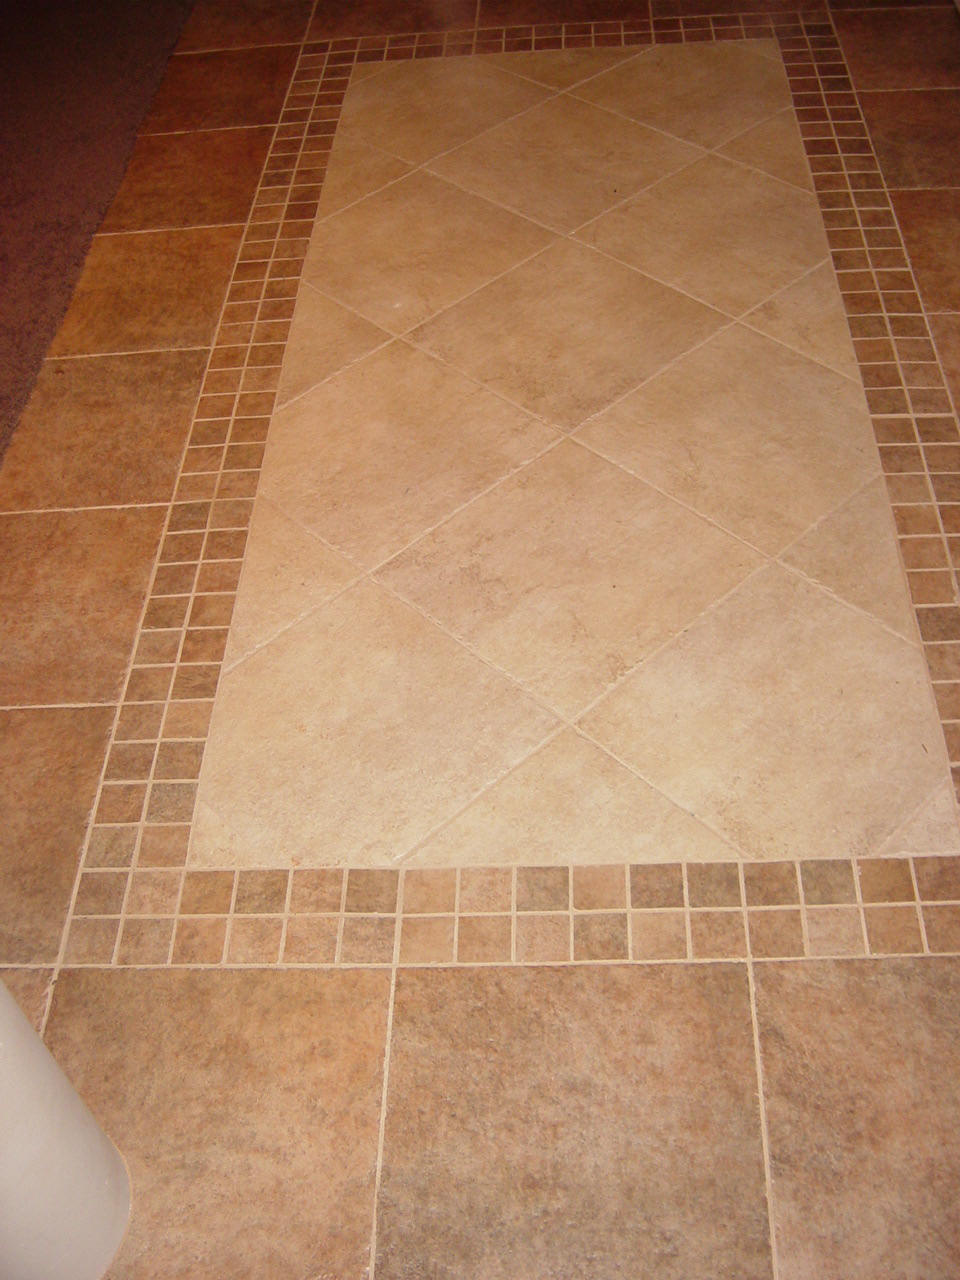 Bathroom Ceramic Tile Flooring EwdInteriors - Bathroom ceramic tile floor